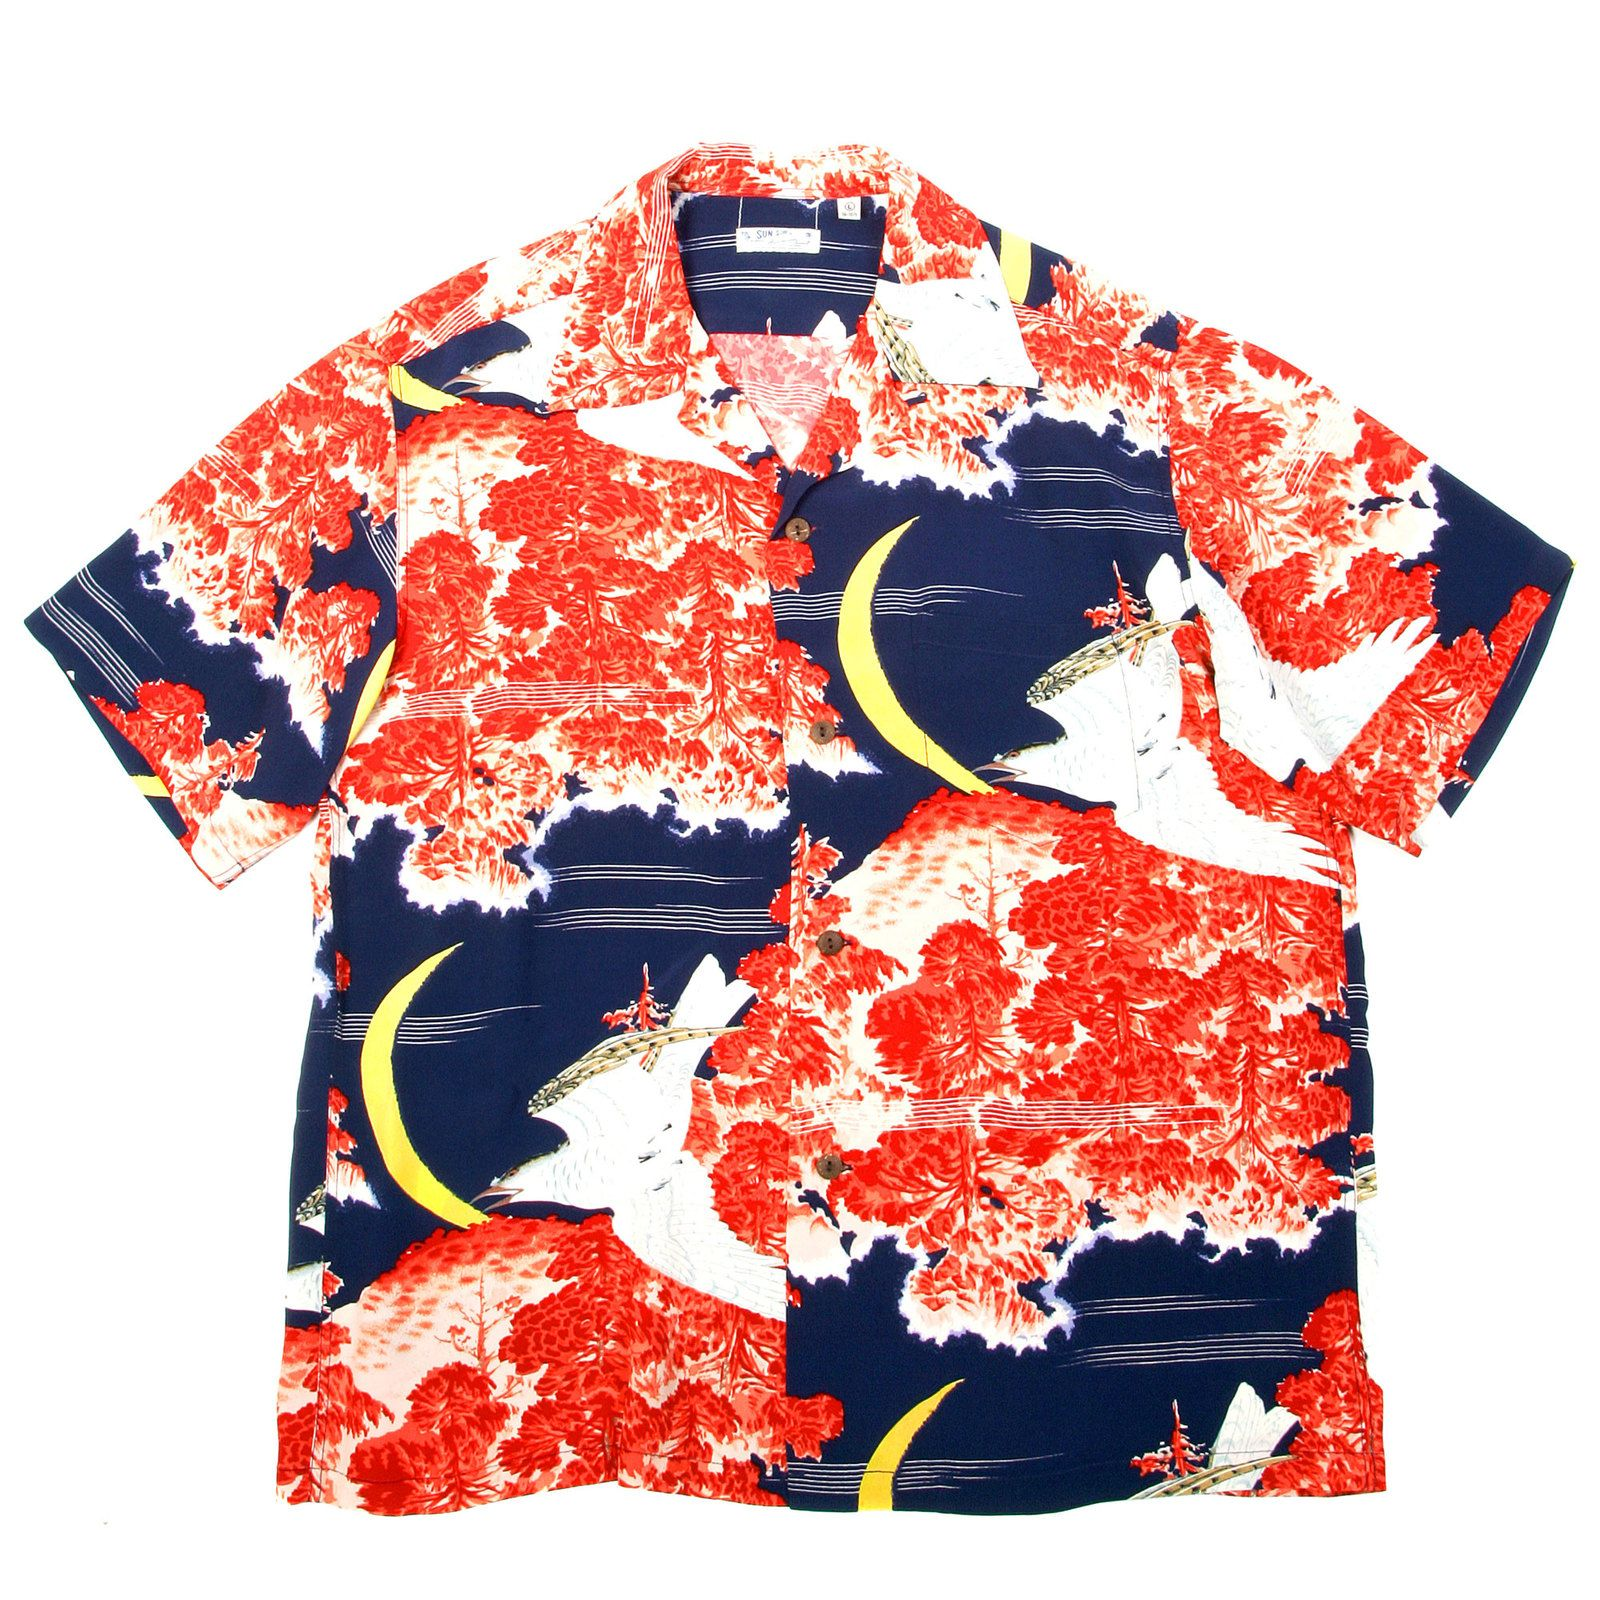 c7e3be29 Get that special look for your special time during the summer with this  amazing mens navy shirt. Buy the Hawaiian shirt by Sun Surf now at Togged  now!